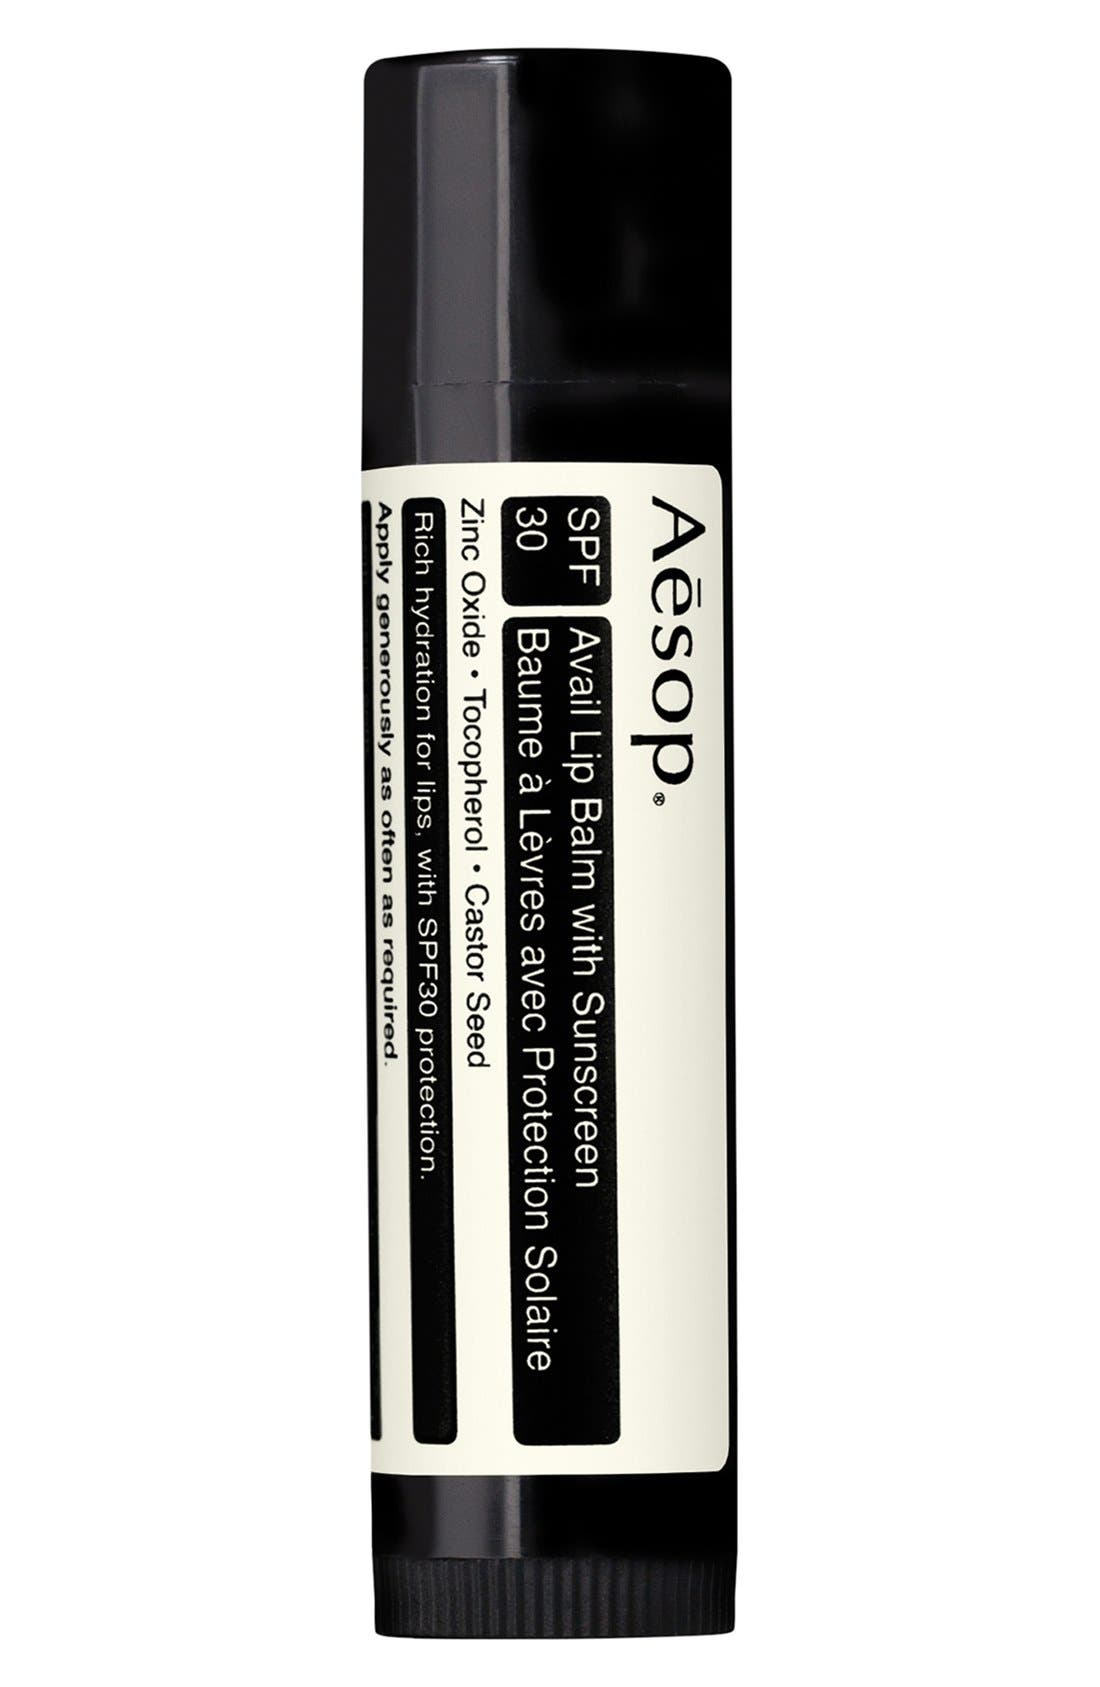 Aesop Avail Lip Balm with Sunscreen